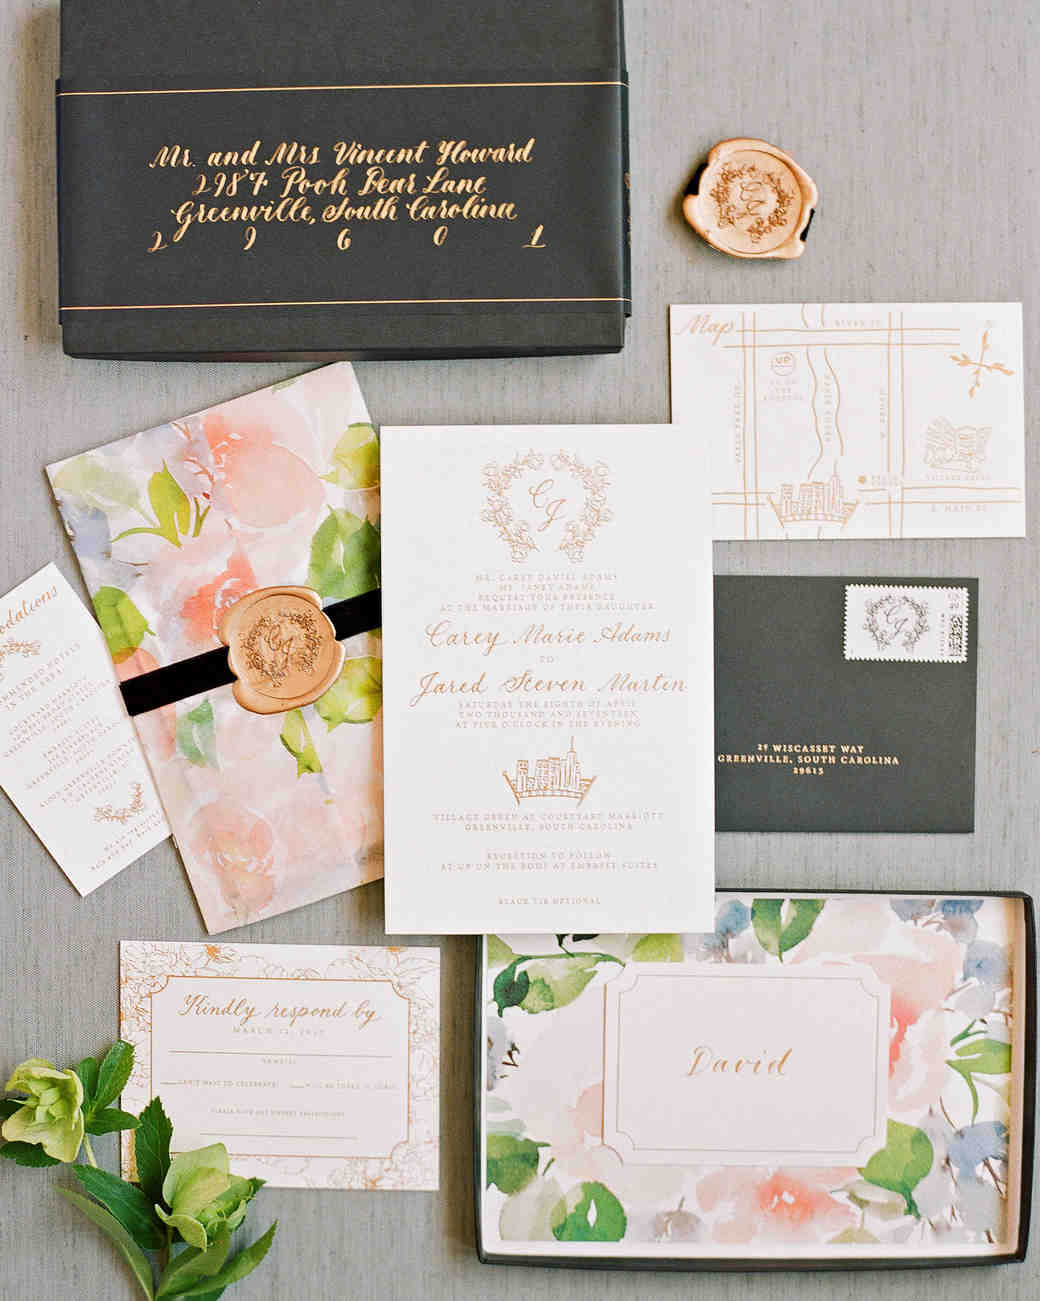 carey jared wedding invite